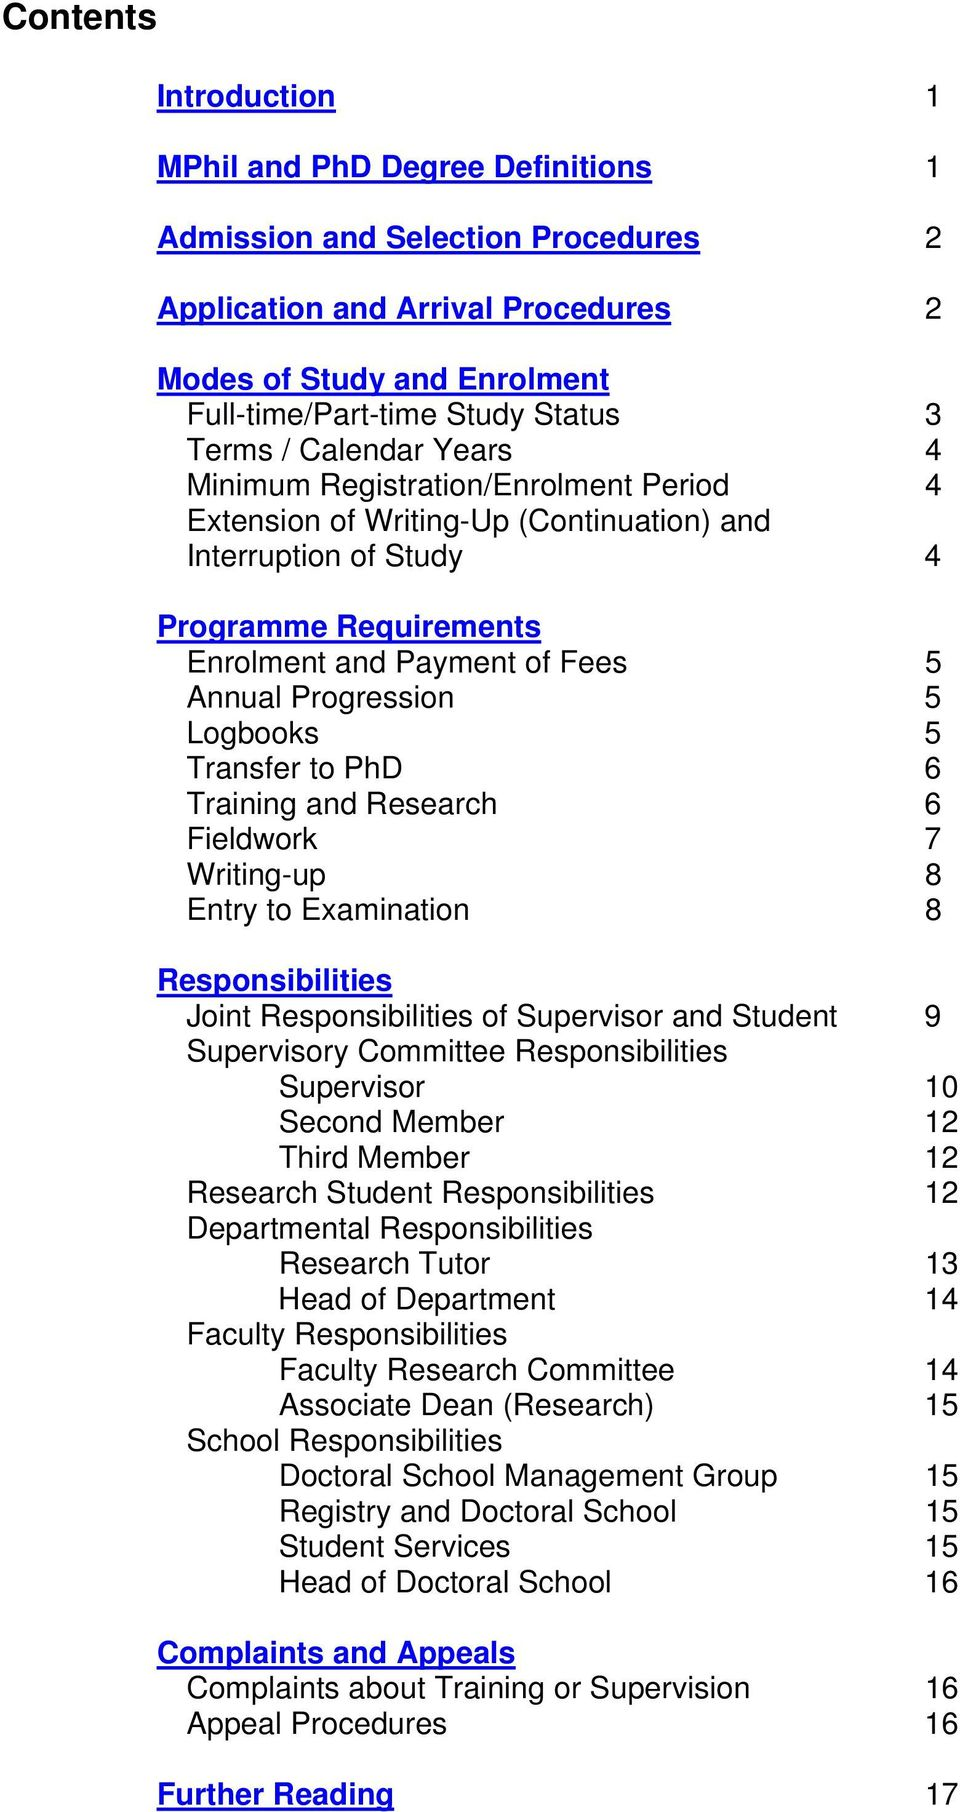 Progression 5 Logbooks 5 Transfer to PhD 6 Training and Research 6 Fieldwork 7 Writing-up 8 Entry to Examination 8 Responsibilities Joint Responsibilities of Supervisor and Student 9 Supervisory